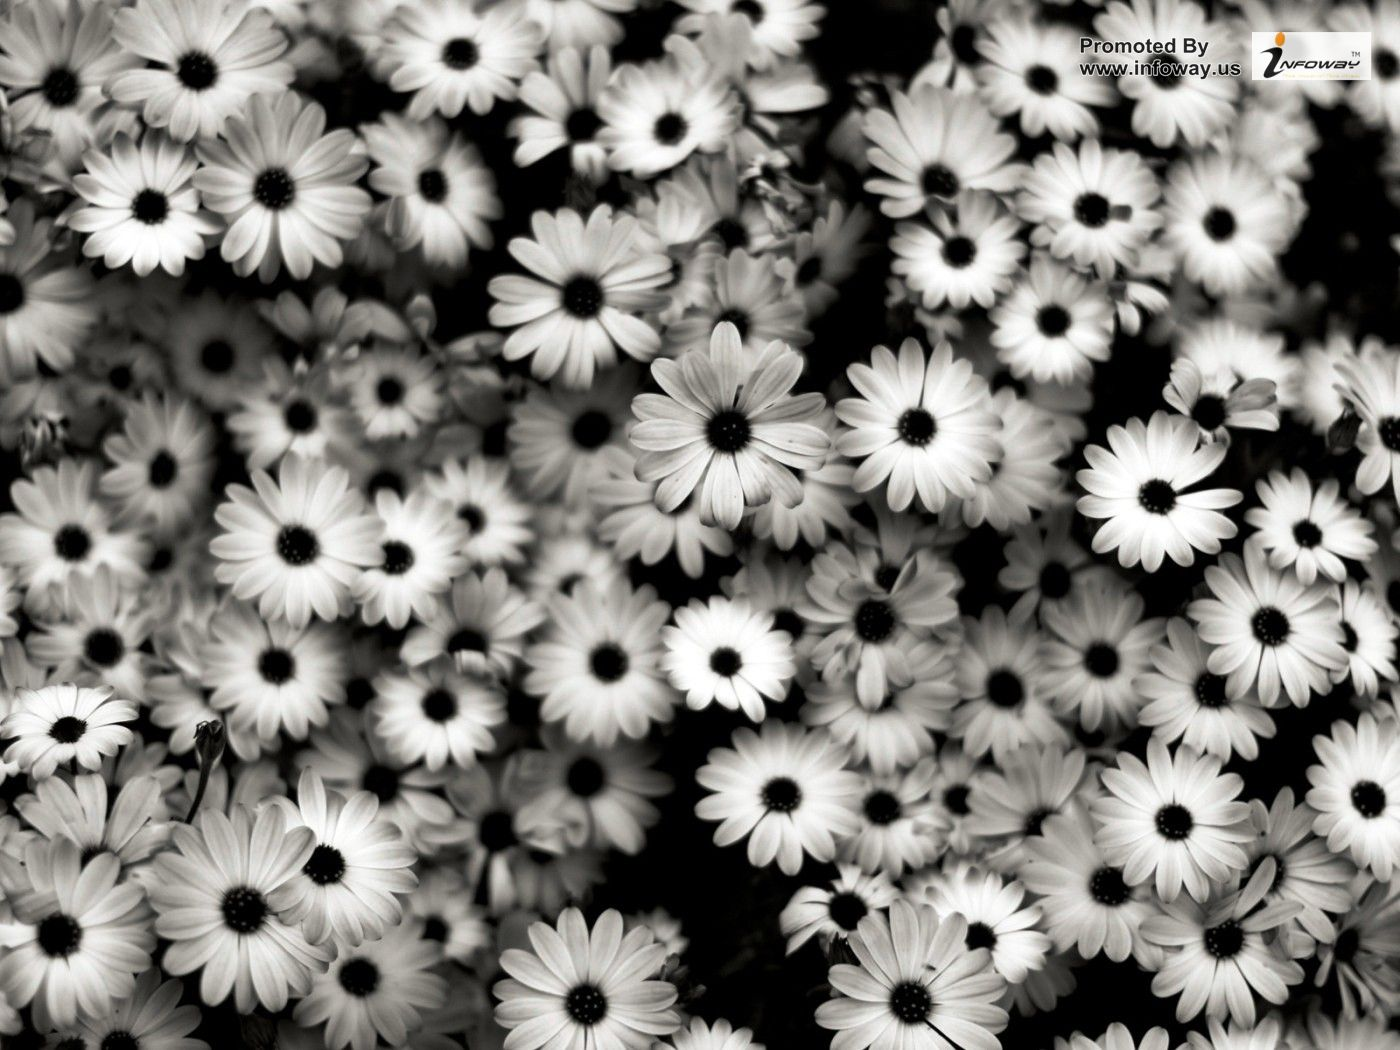 Black and White Flowers Wallpaper - WallpaperSafari